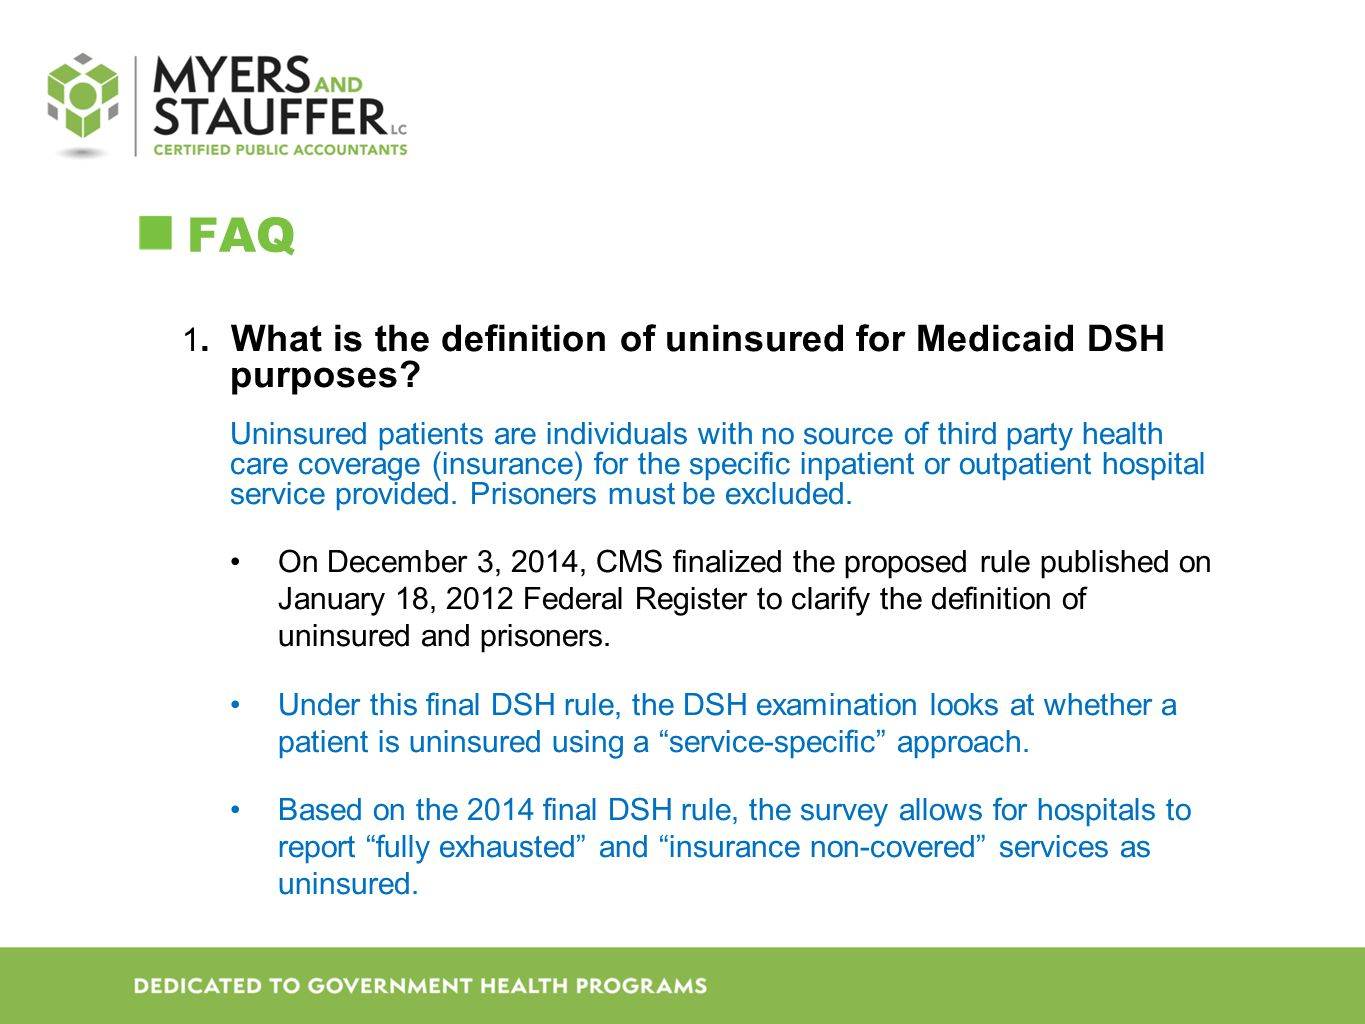 FAQ 1. What is the definition of uninsured for Medicaid DSH purposes